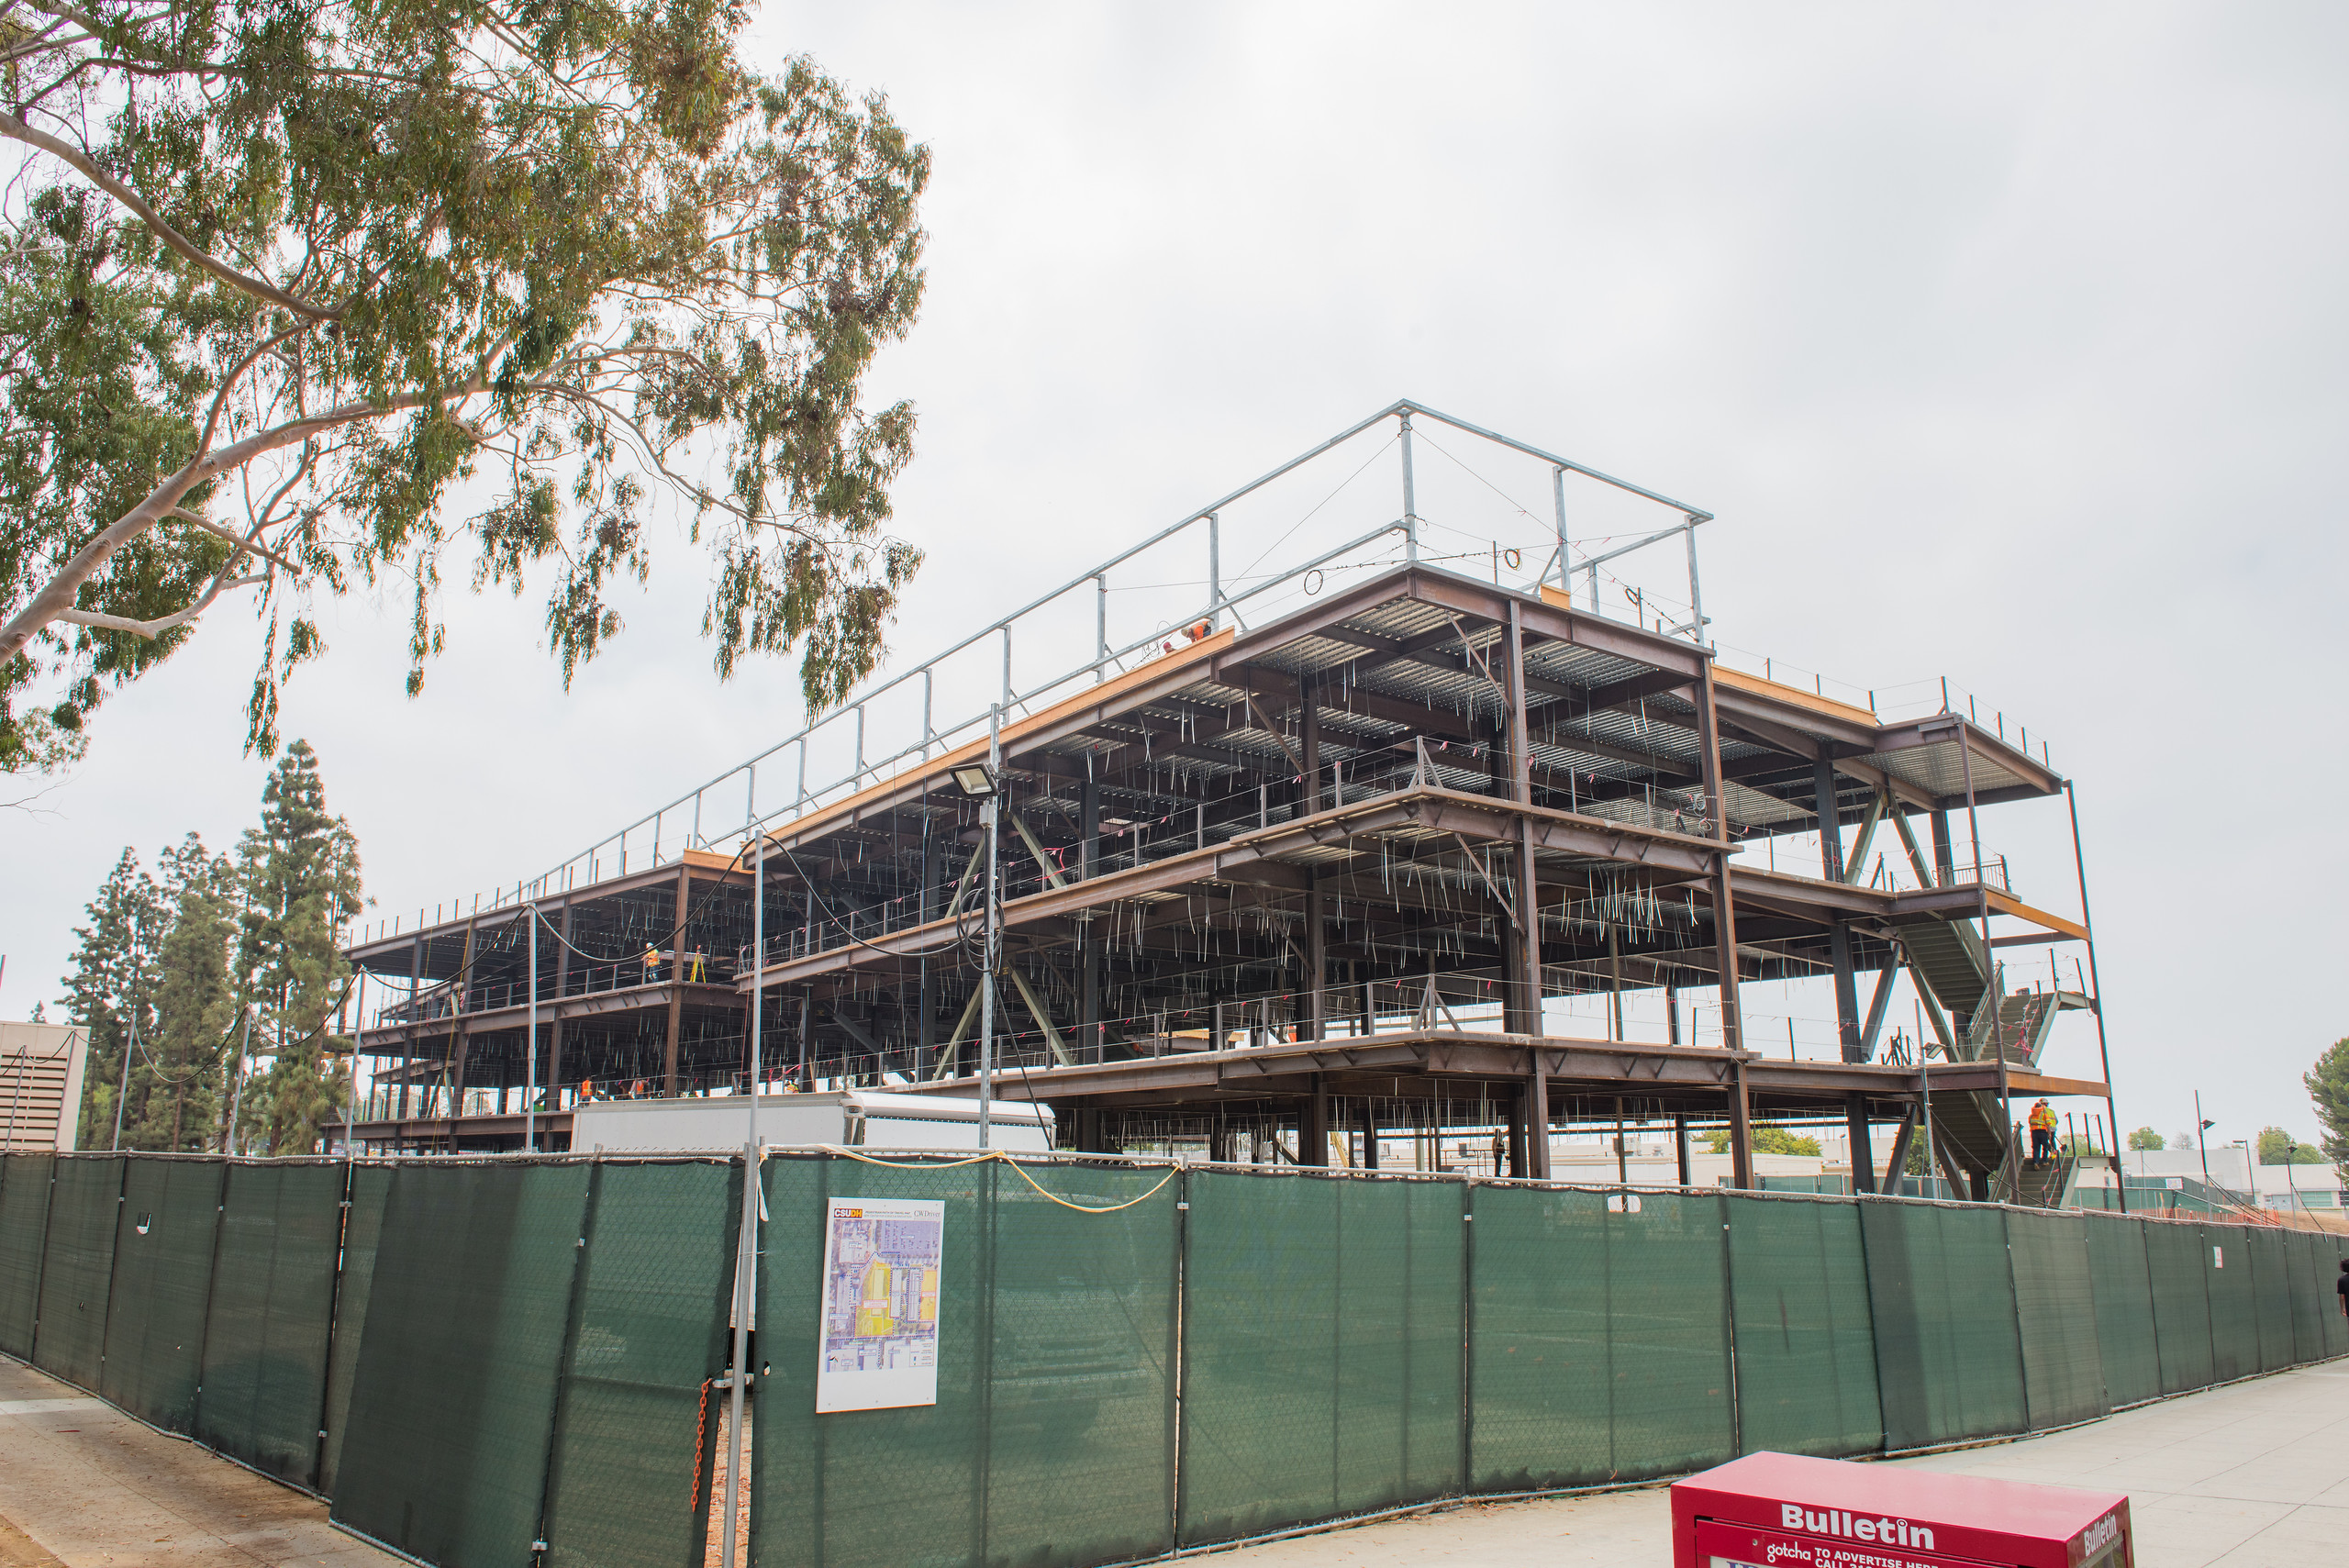 csudh-science-progress-2